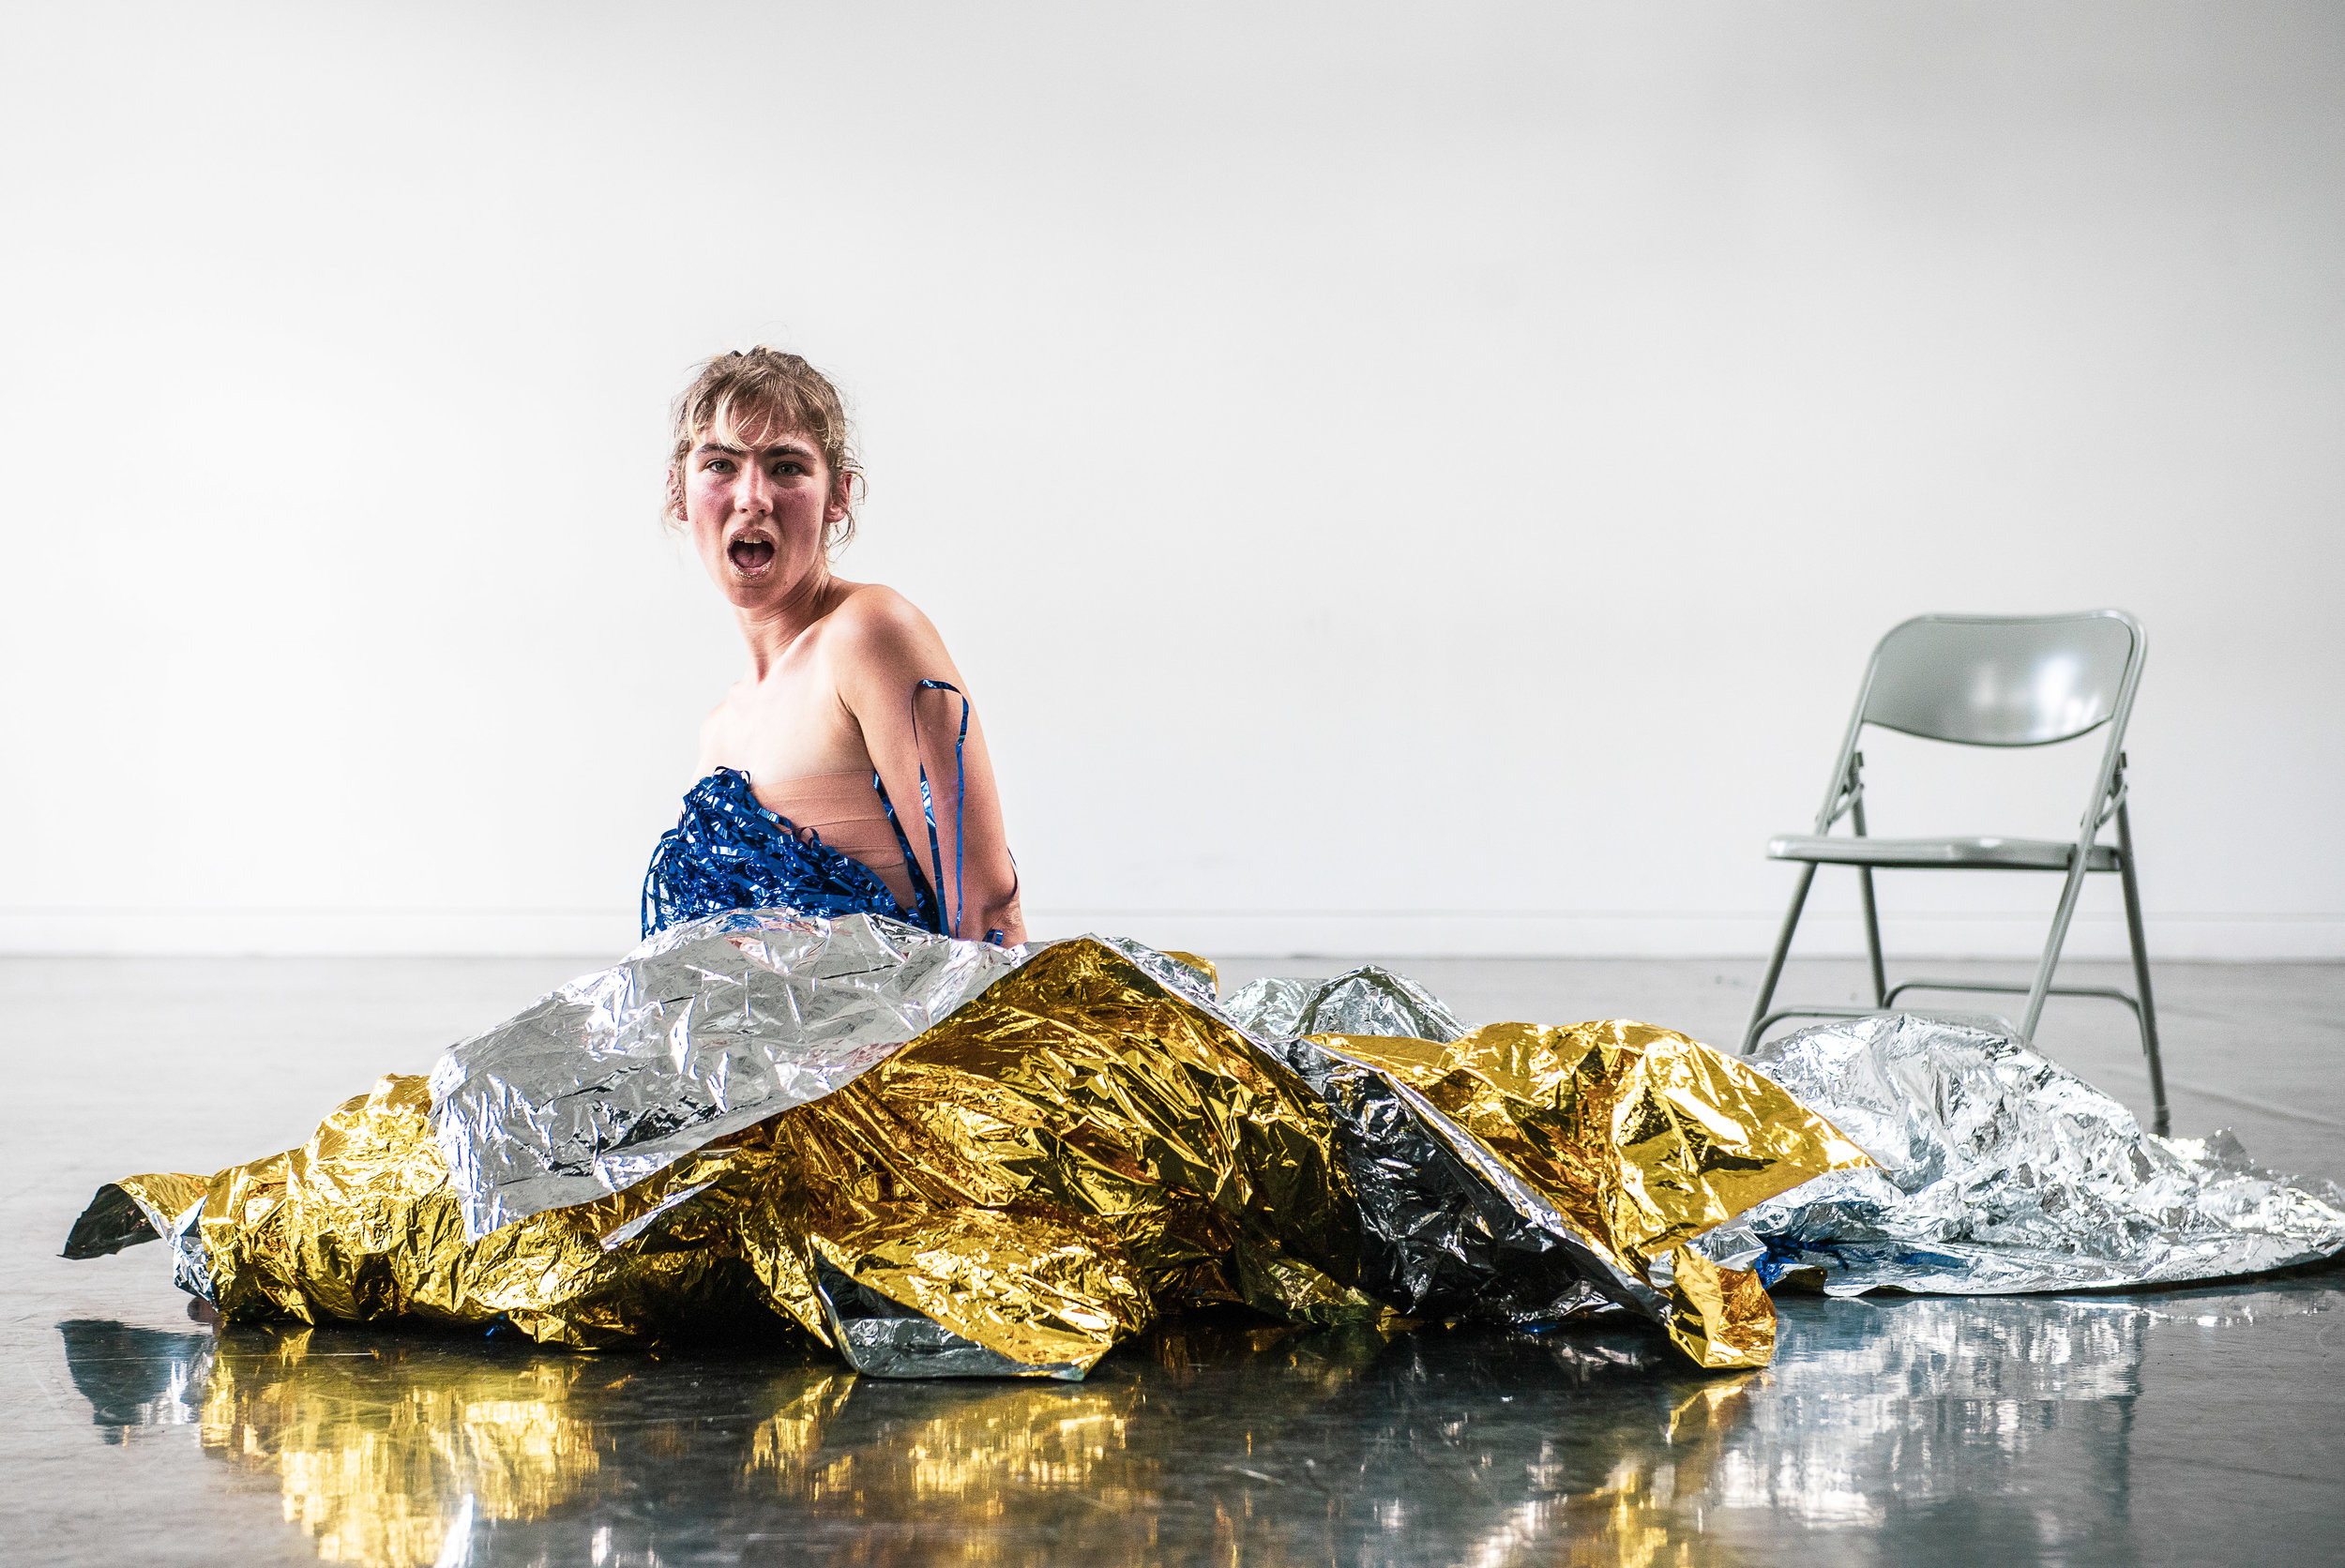 Selkie Was A Sea Witch (or?...) - Kitty Fedorec - image Brian Hartley